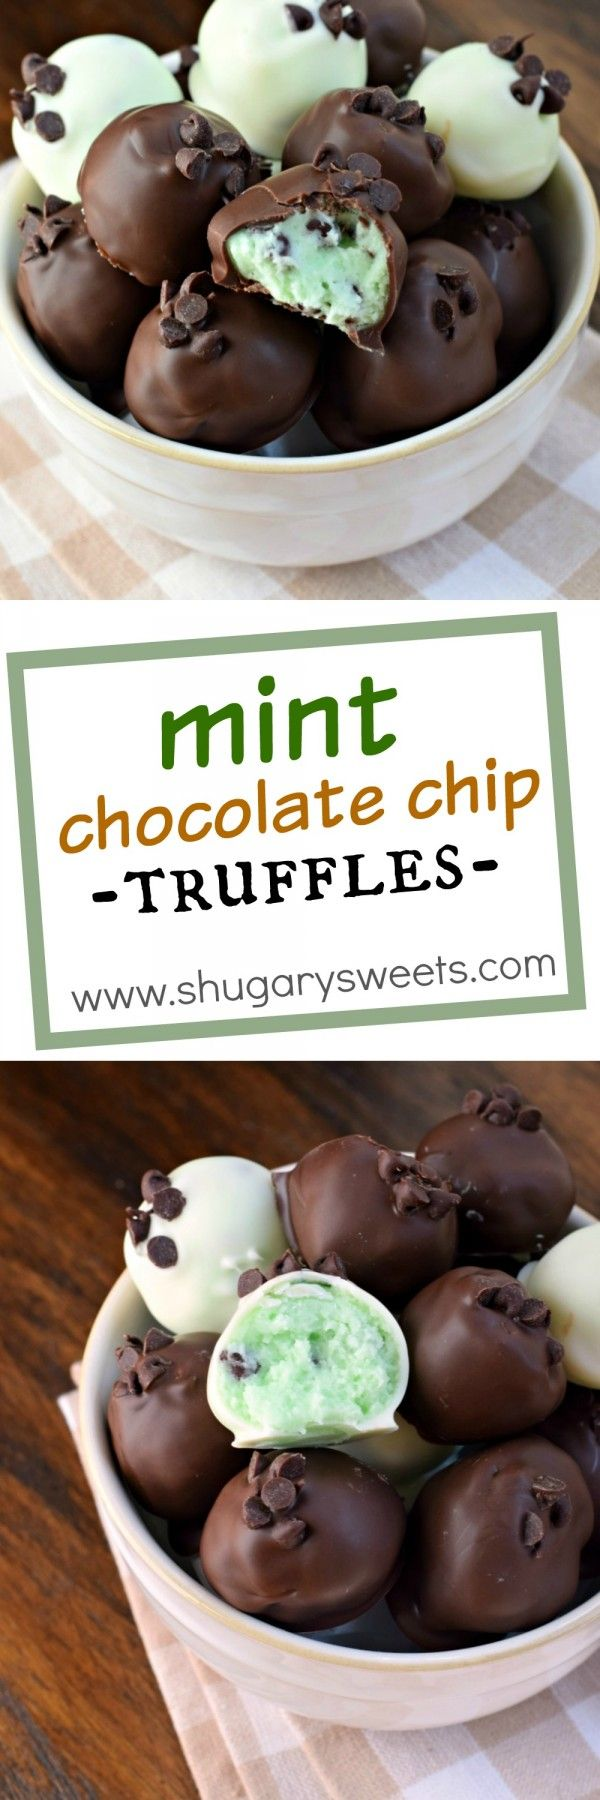 Delicious creamy mint chocolate chip truffles recipe so easy to delicious creamy mint chocolate chip truffles recipe so easy to make too forumfinder Image collections